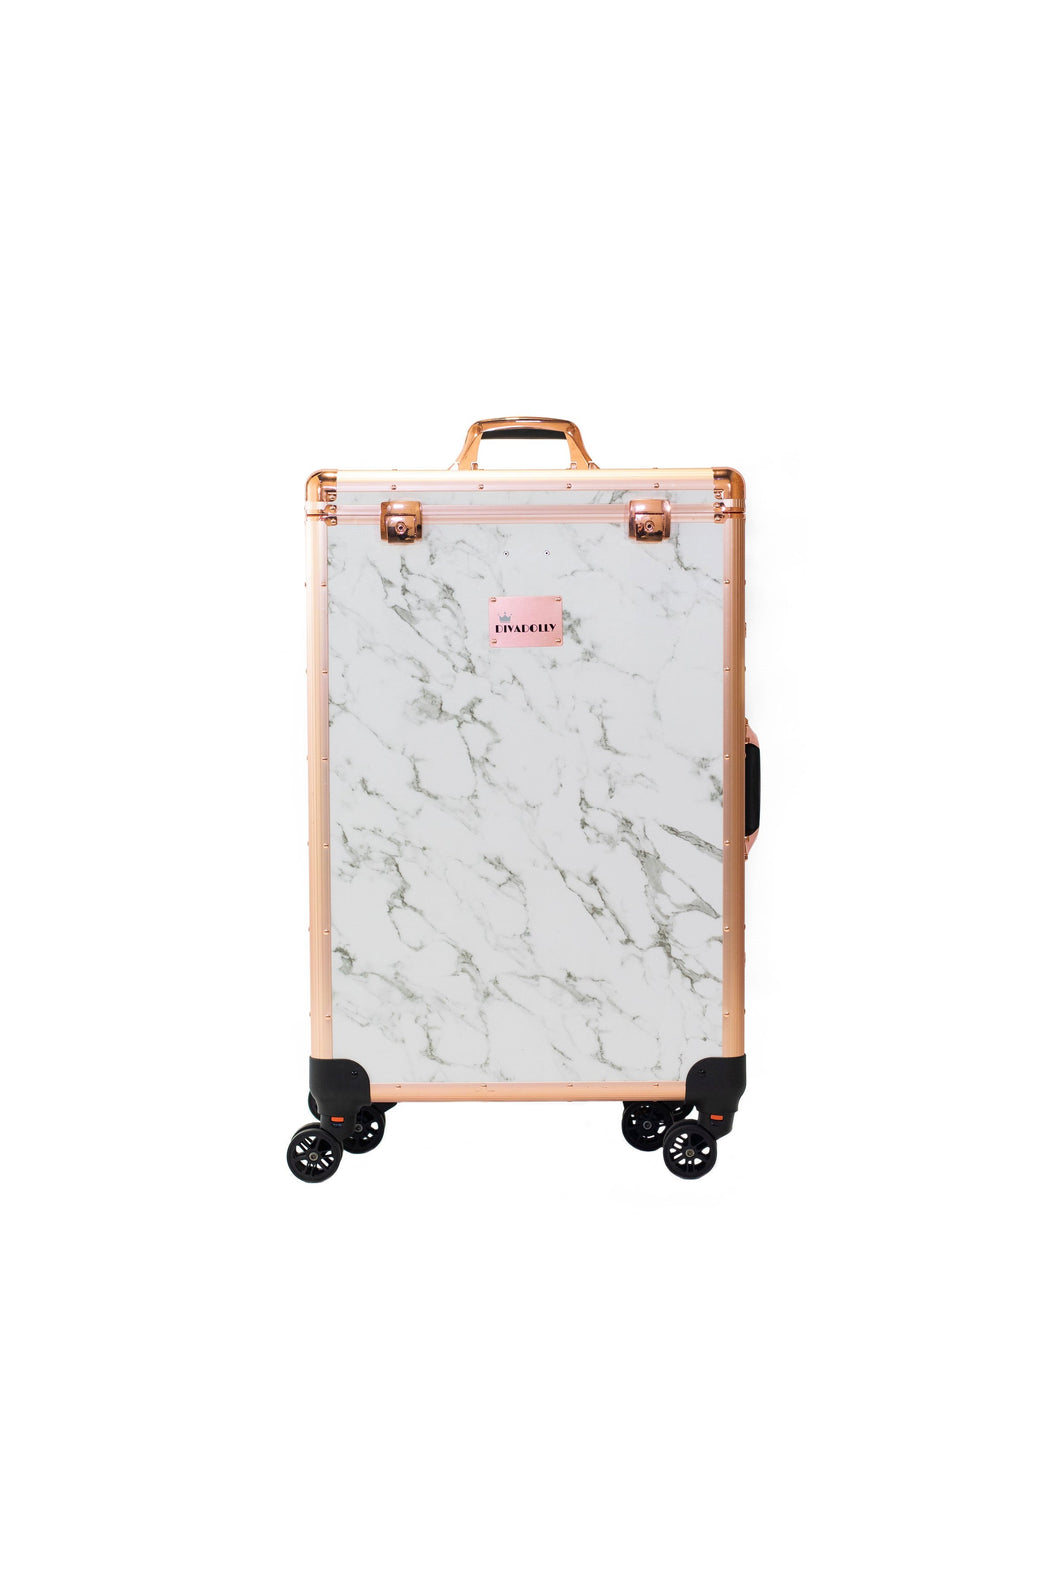 Factory Second White Marble DivaDolly with Rose Gold Trim | Rolling Dance Bag Alternative with a Wardrobe Rack